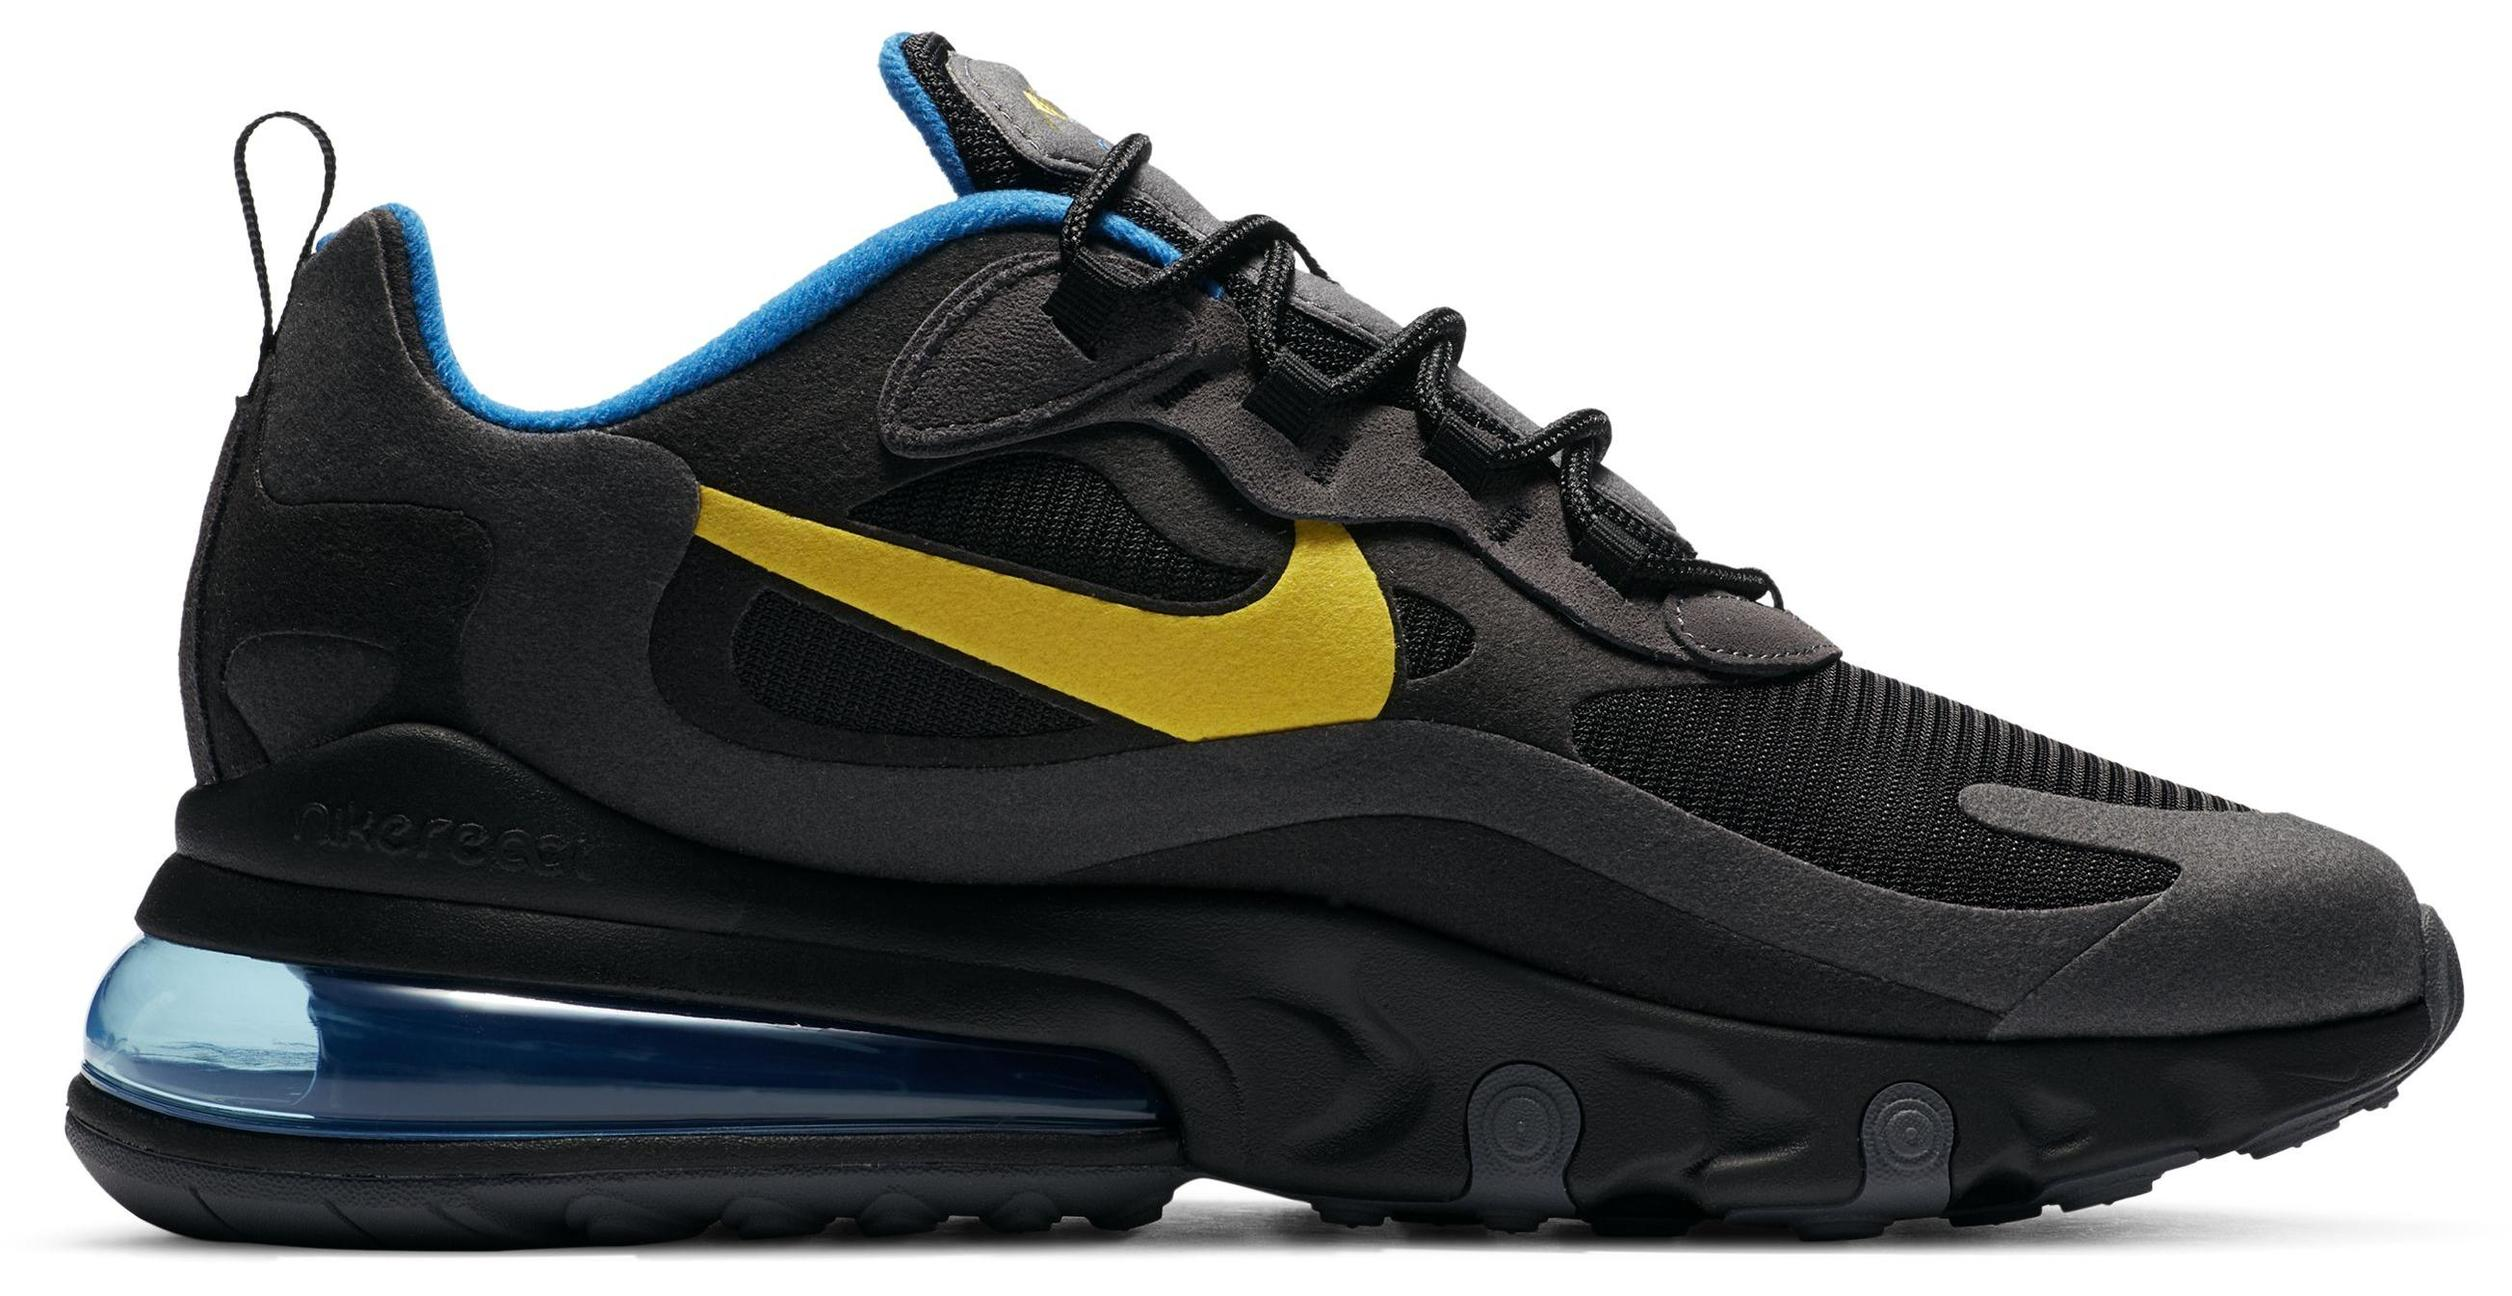 Nike Air Max 270 React Black/Dark Grey/Blue Spark/Tour Yellow